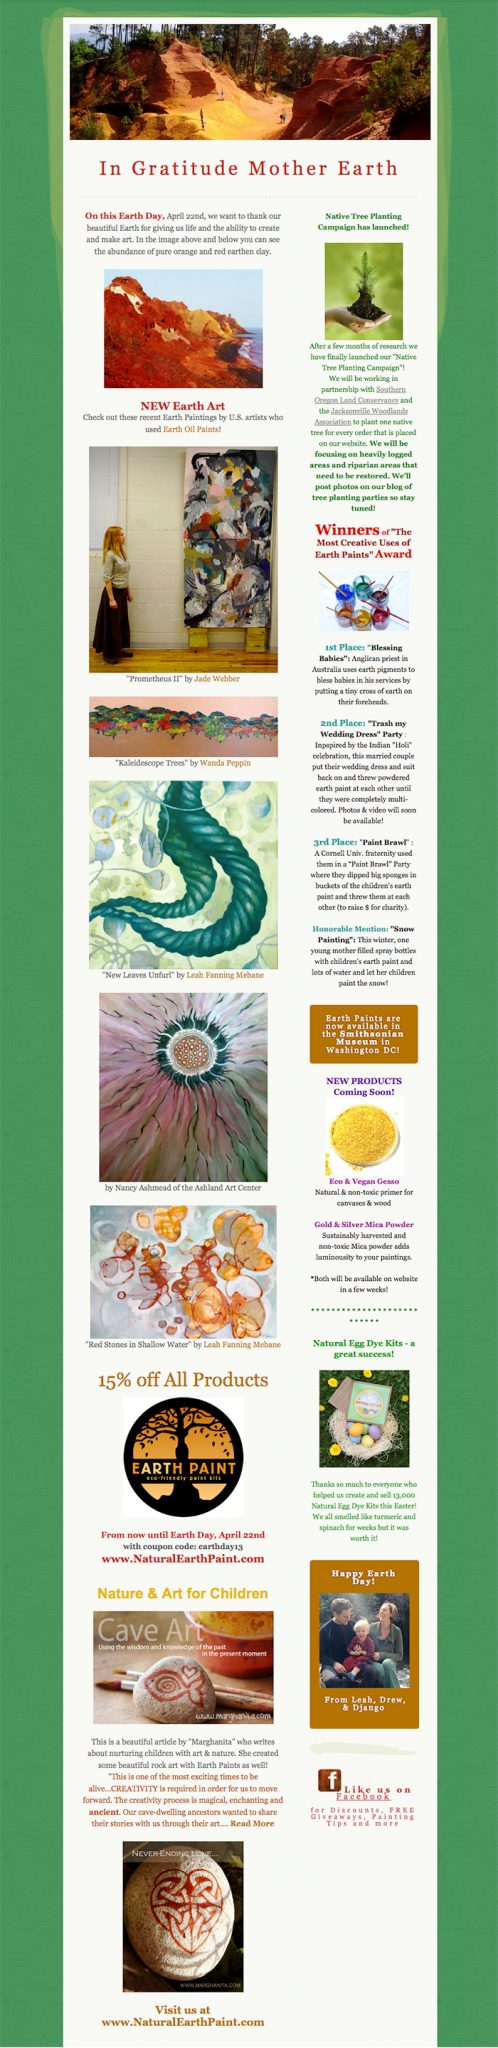 eARTh day 2013 news from Leah Mebane